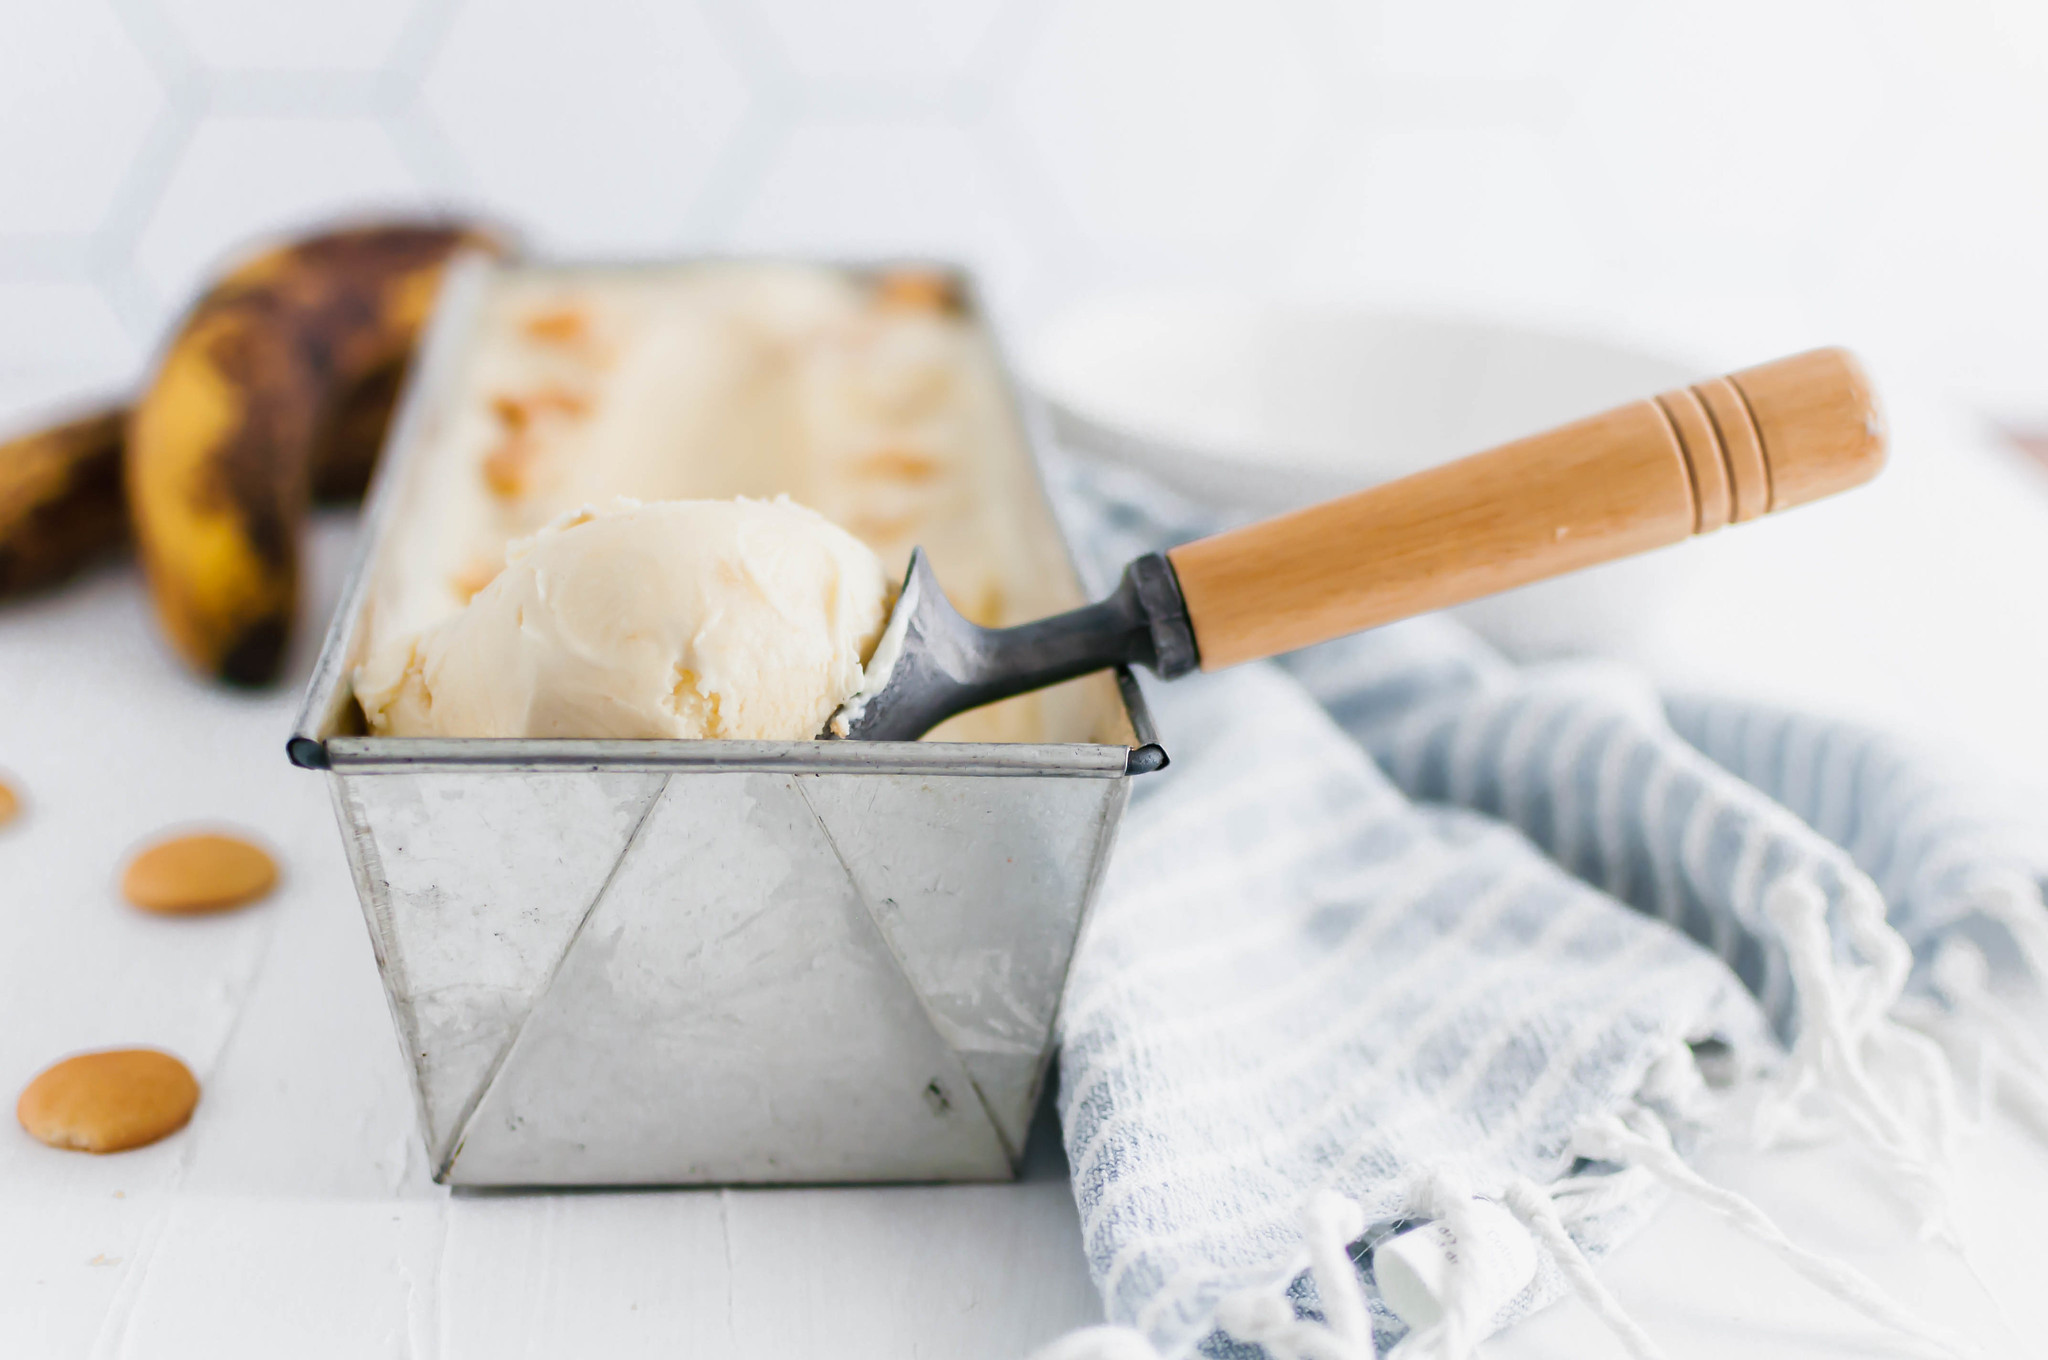 This Banana Pudding Ice Cream is a fun spin on the classic dessert. Banana pudding, fresh bananas and Nilla wafers combine to create a creamy, fruity ice cream perfect for the end of summer.